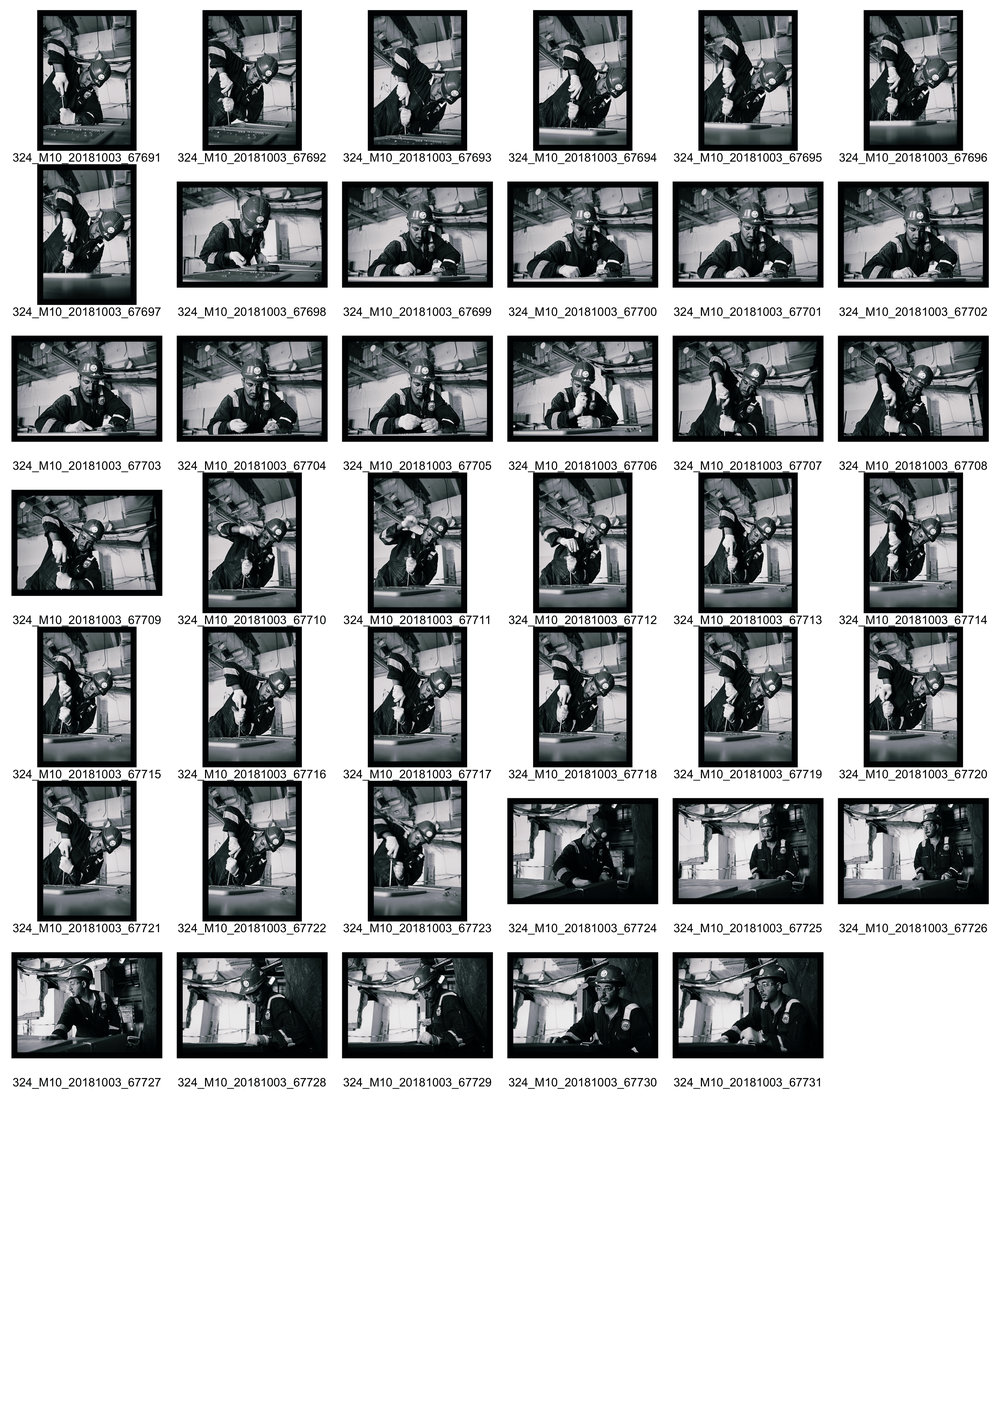 Person at Work II - Contact Sheet 4 of 4